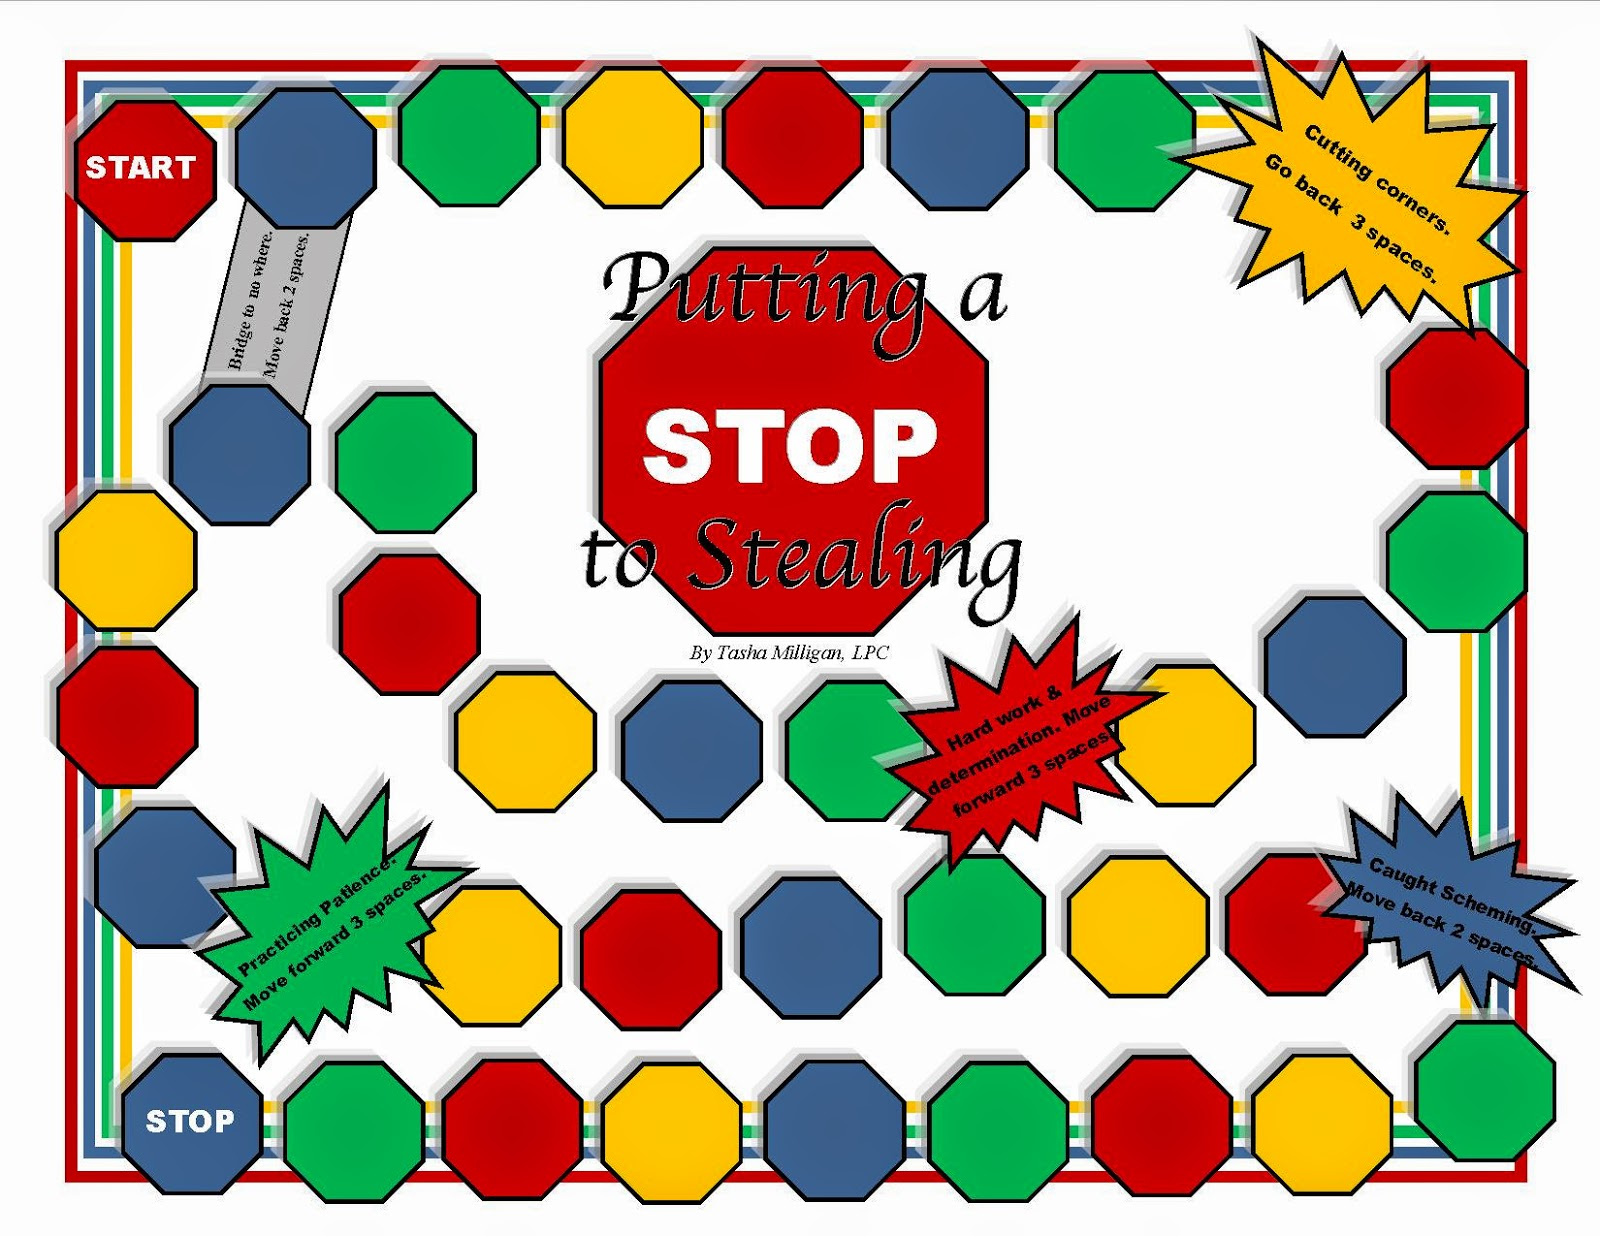 Pathways To Peace Counseling Putting A Stop To Stealing